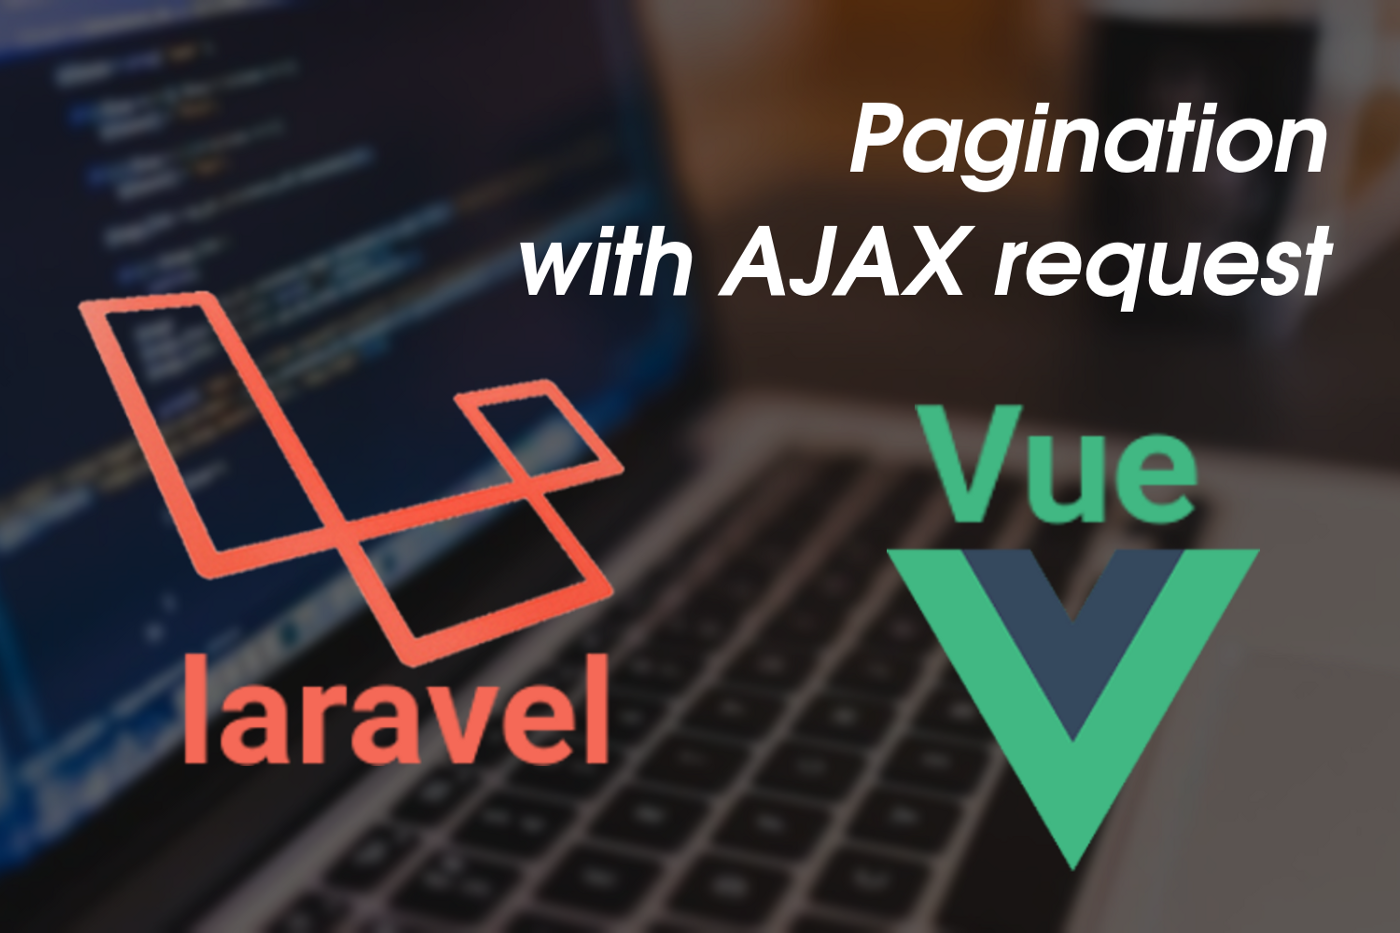 Pagination with ajax request using Laravel and Vue - codeburst